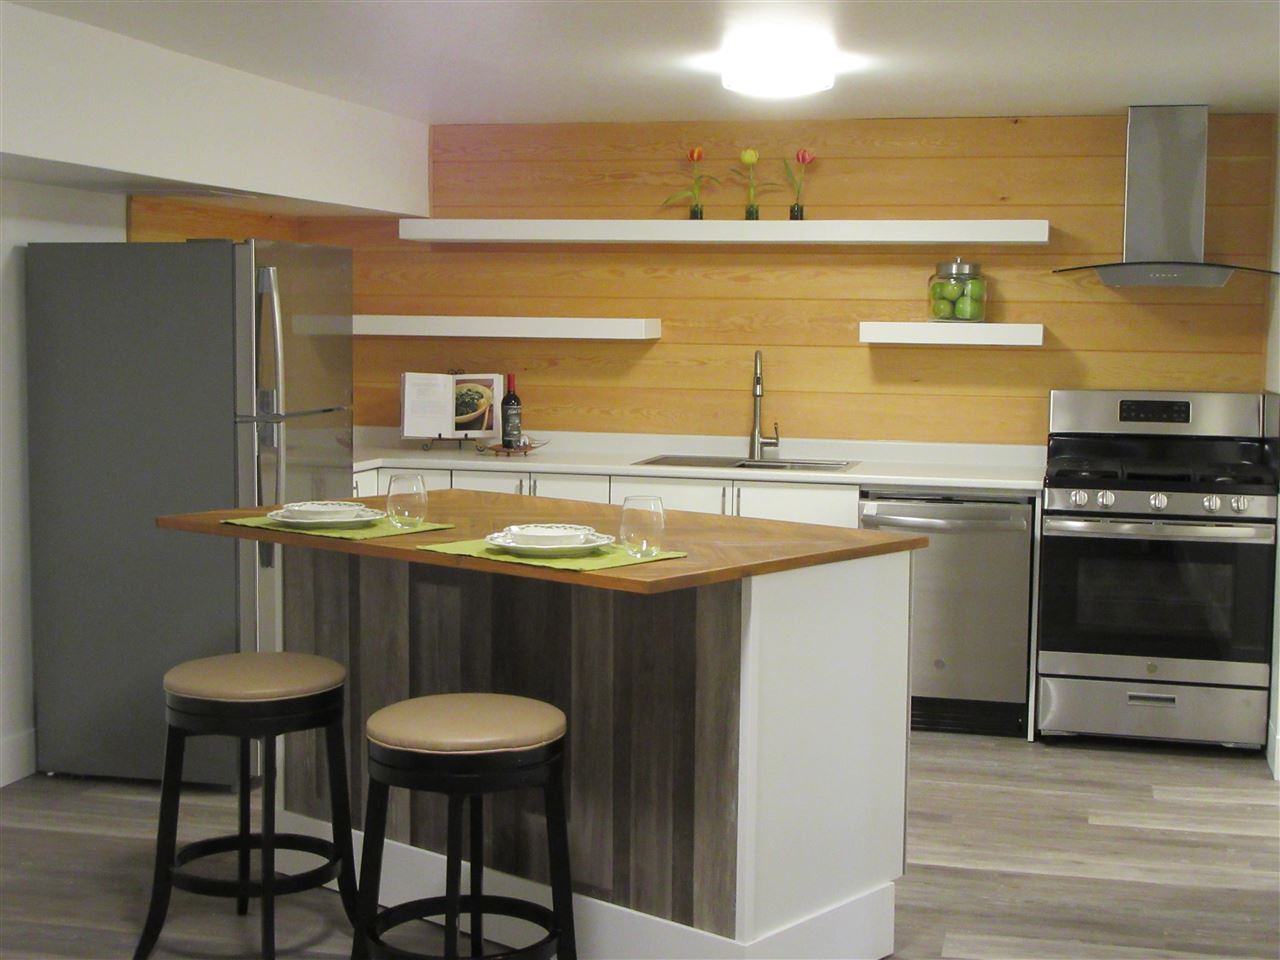 """Photo 16: Photos: 121 FREEMAN Street in Prince George: Nechako View House for sale in """"NECHAKO"""" (PG City Central (Zone 72))  : MLS®# R2493268"""